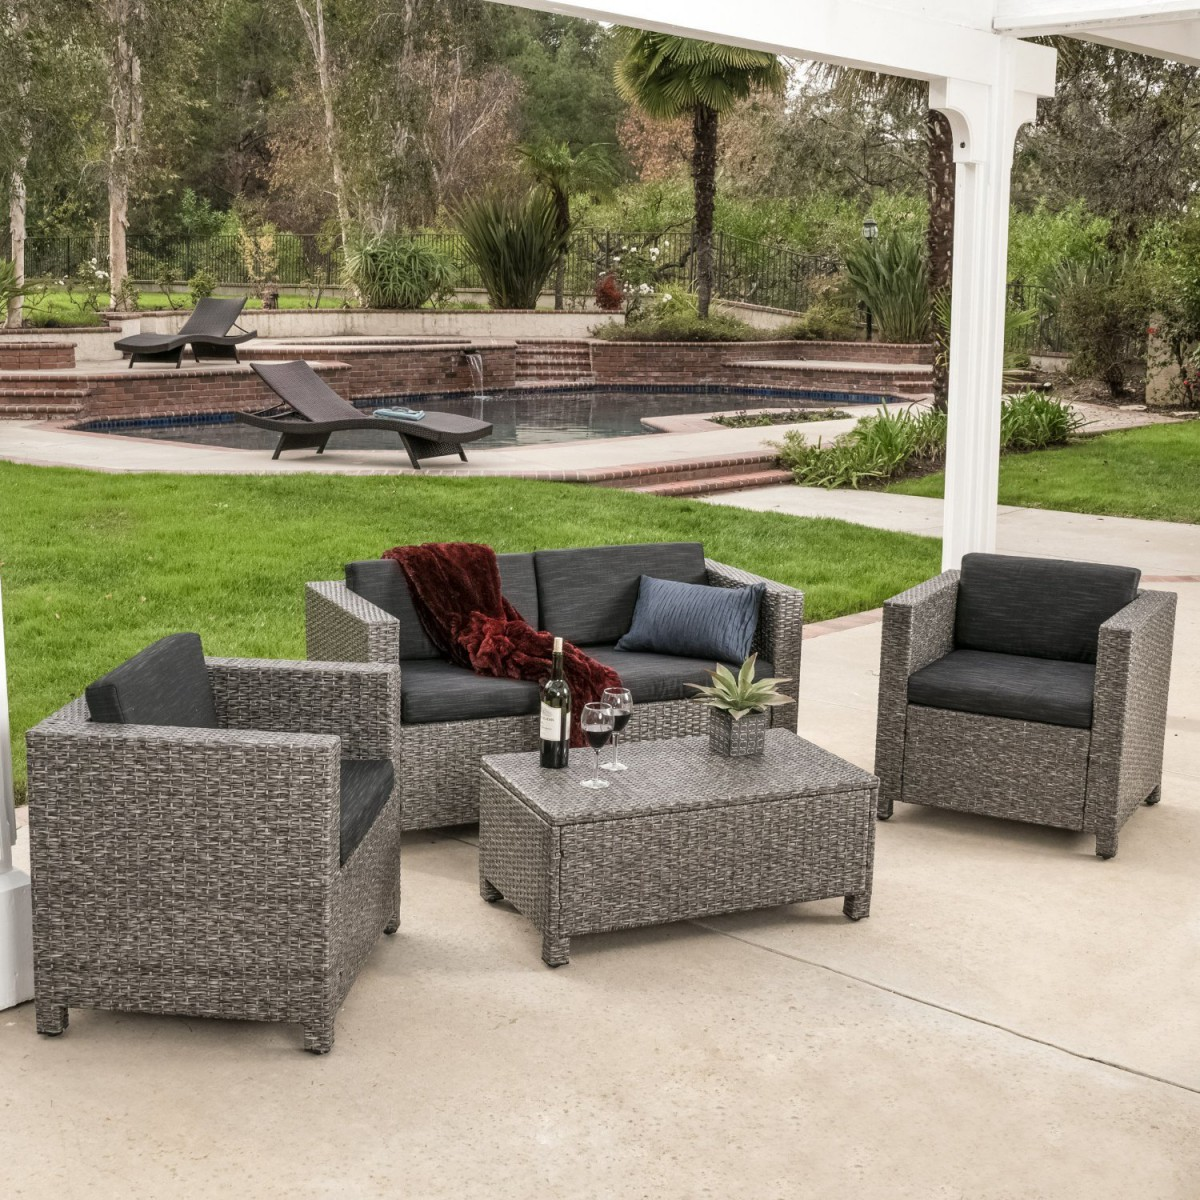 Black wicker sofa collection in black outdoor wicker for Outdoor furniture wicker